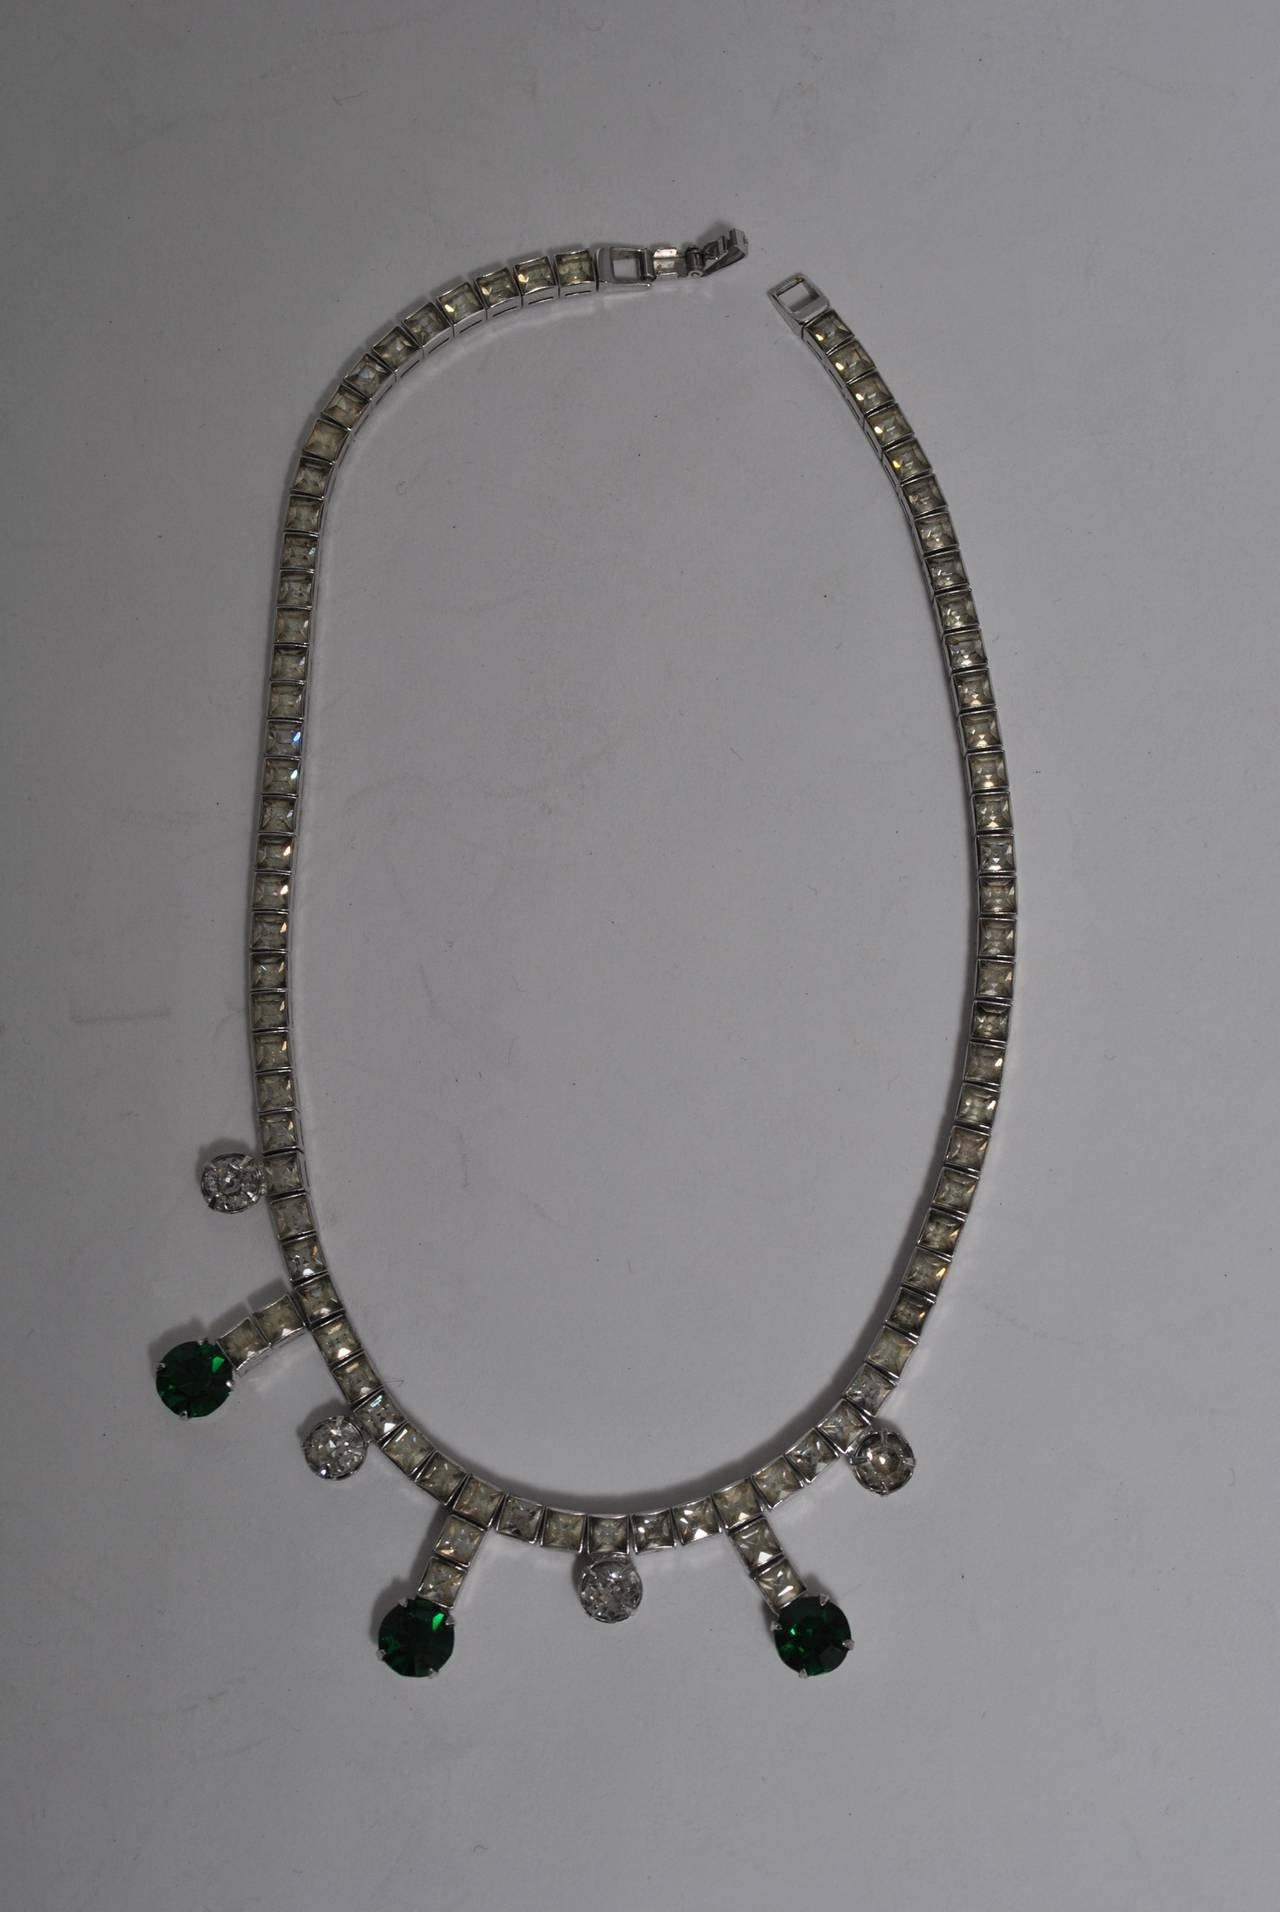 Vintage Rhinestone and Emerald Necklace 5